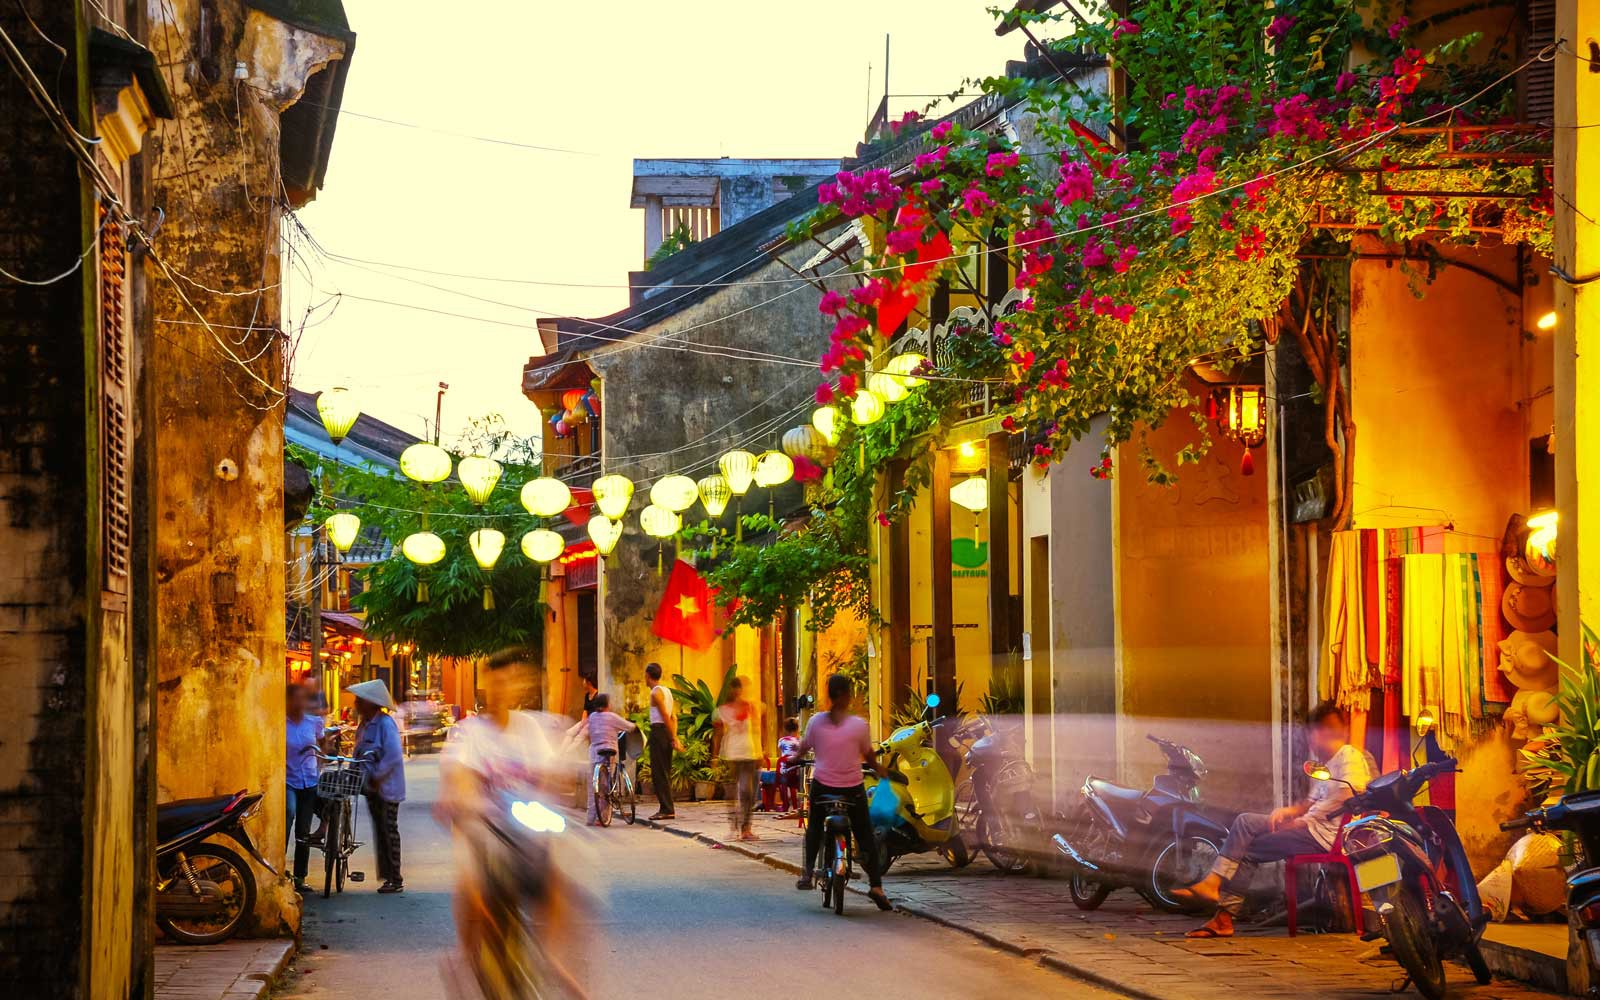 vietnam on top best countries for traveling alone